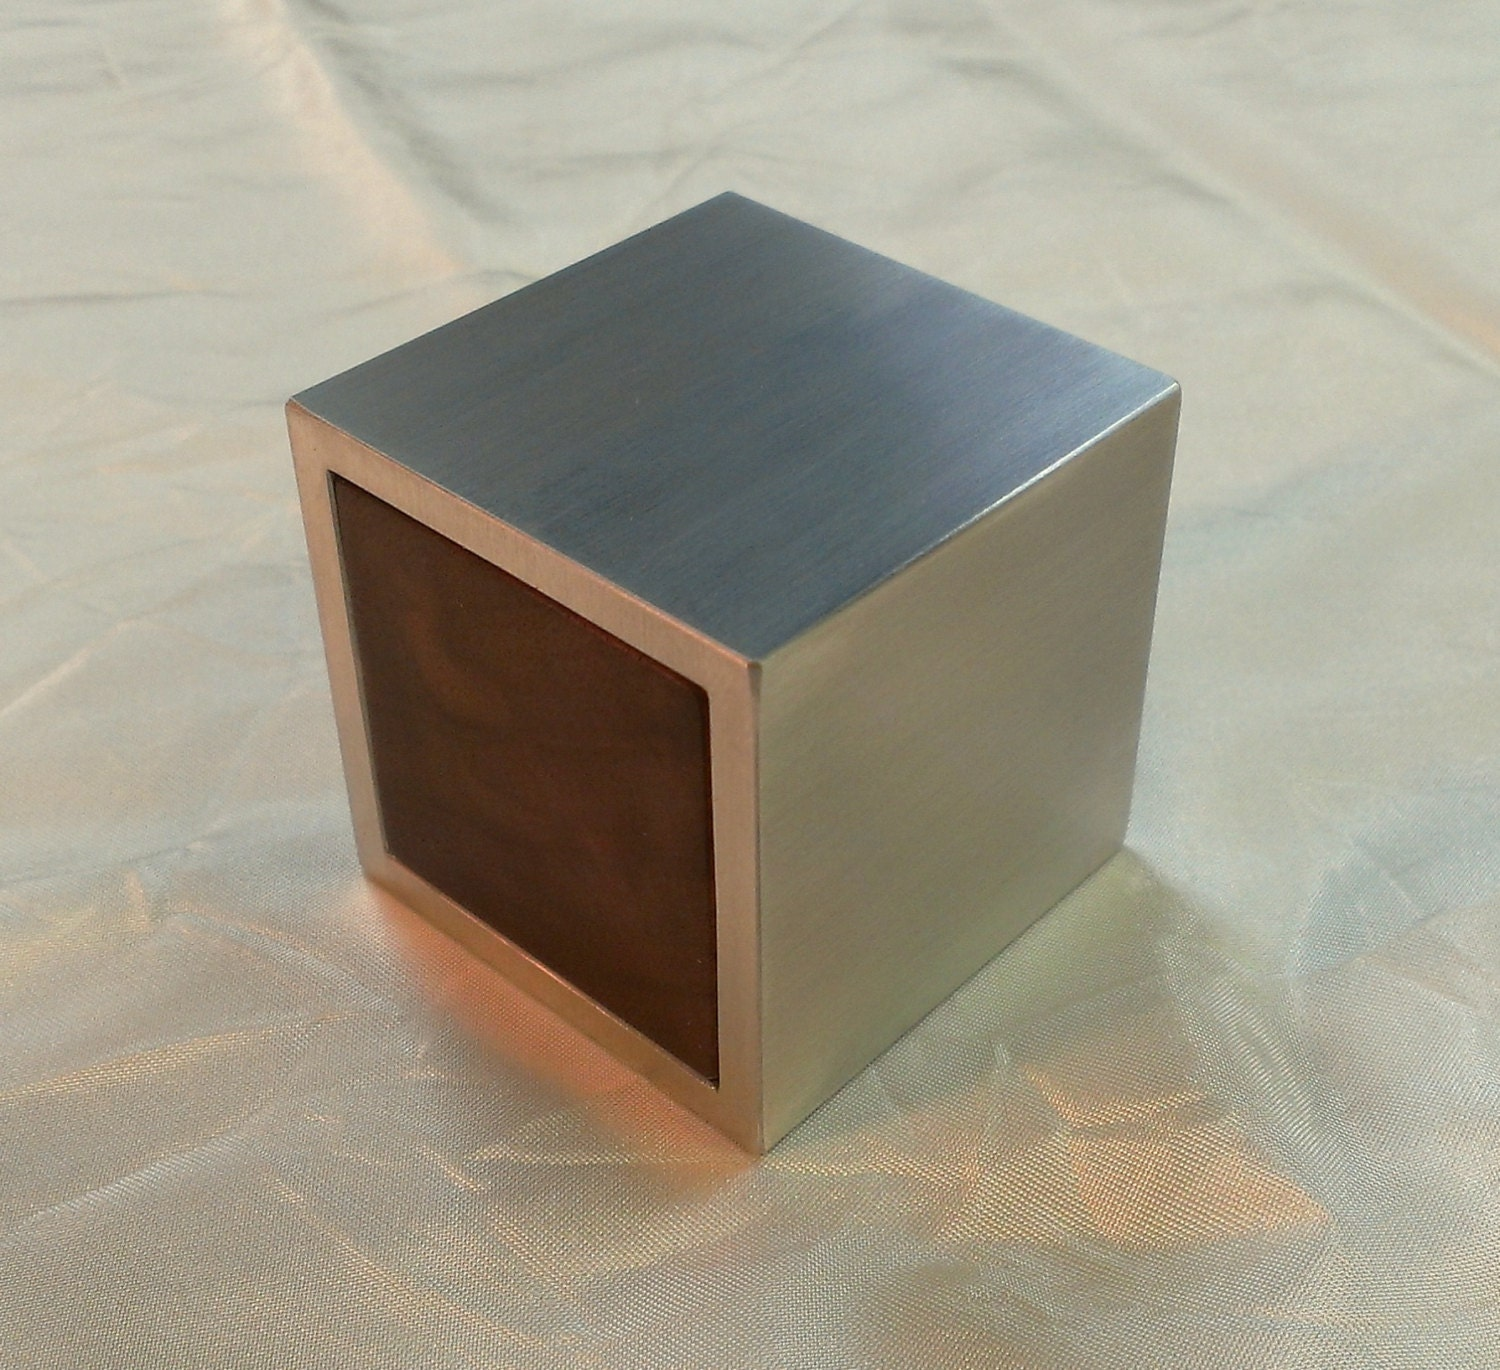 Cubed metal and wood custom engagement ring box for Custom engagement ring box